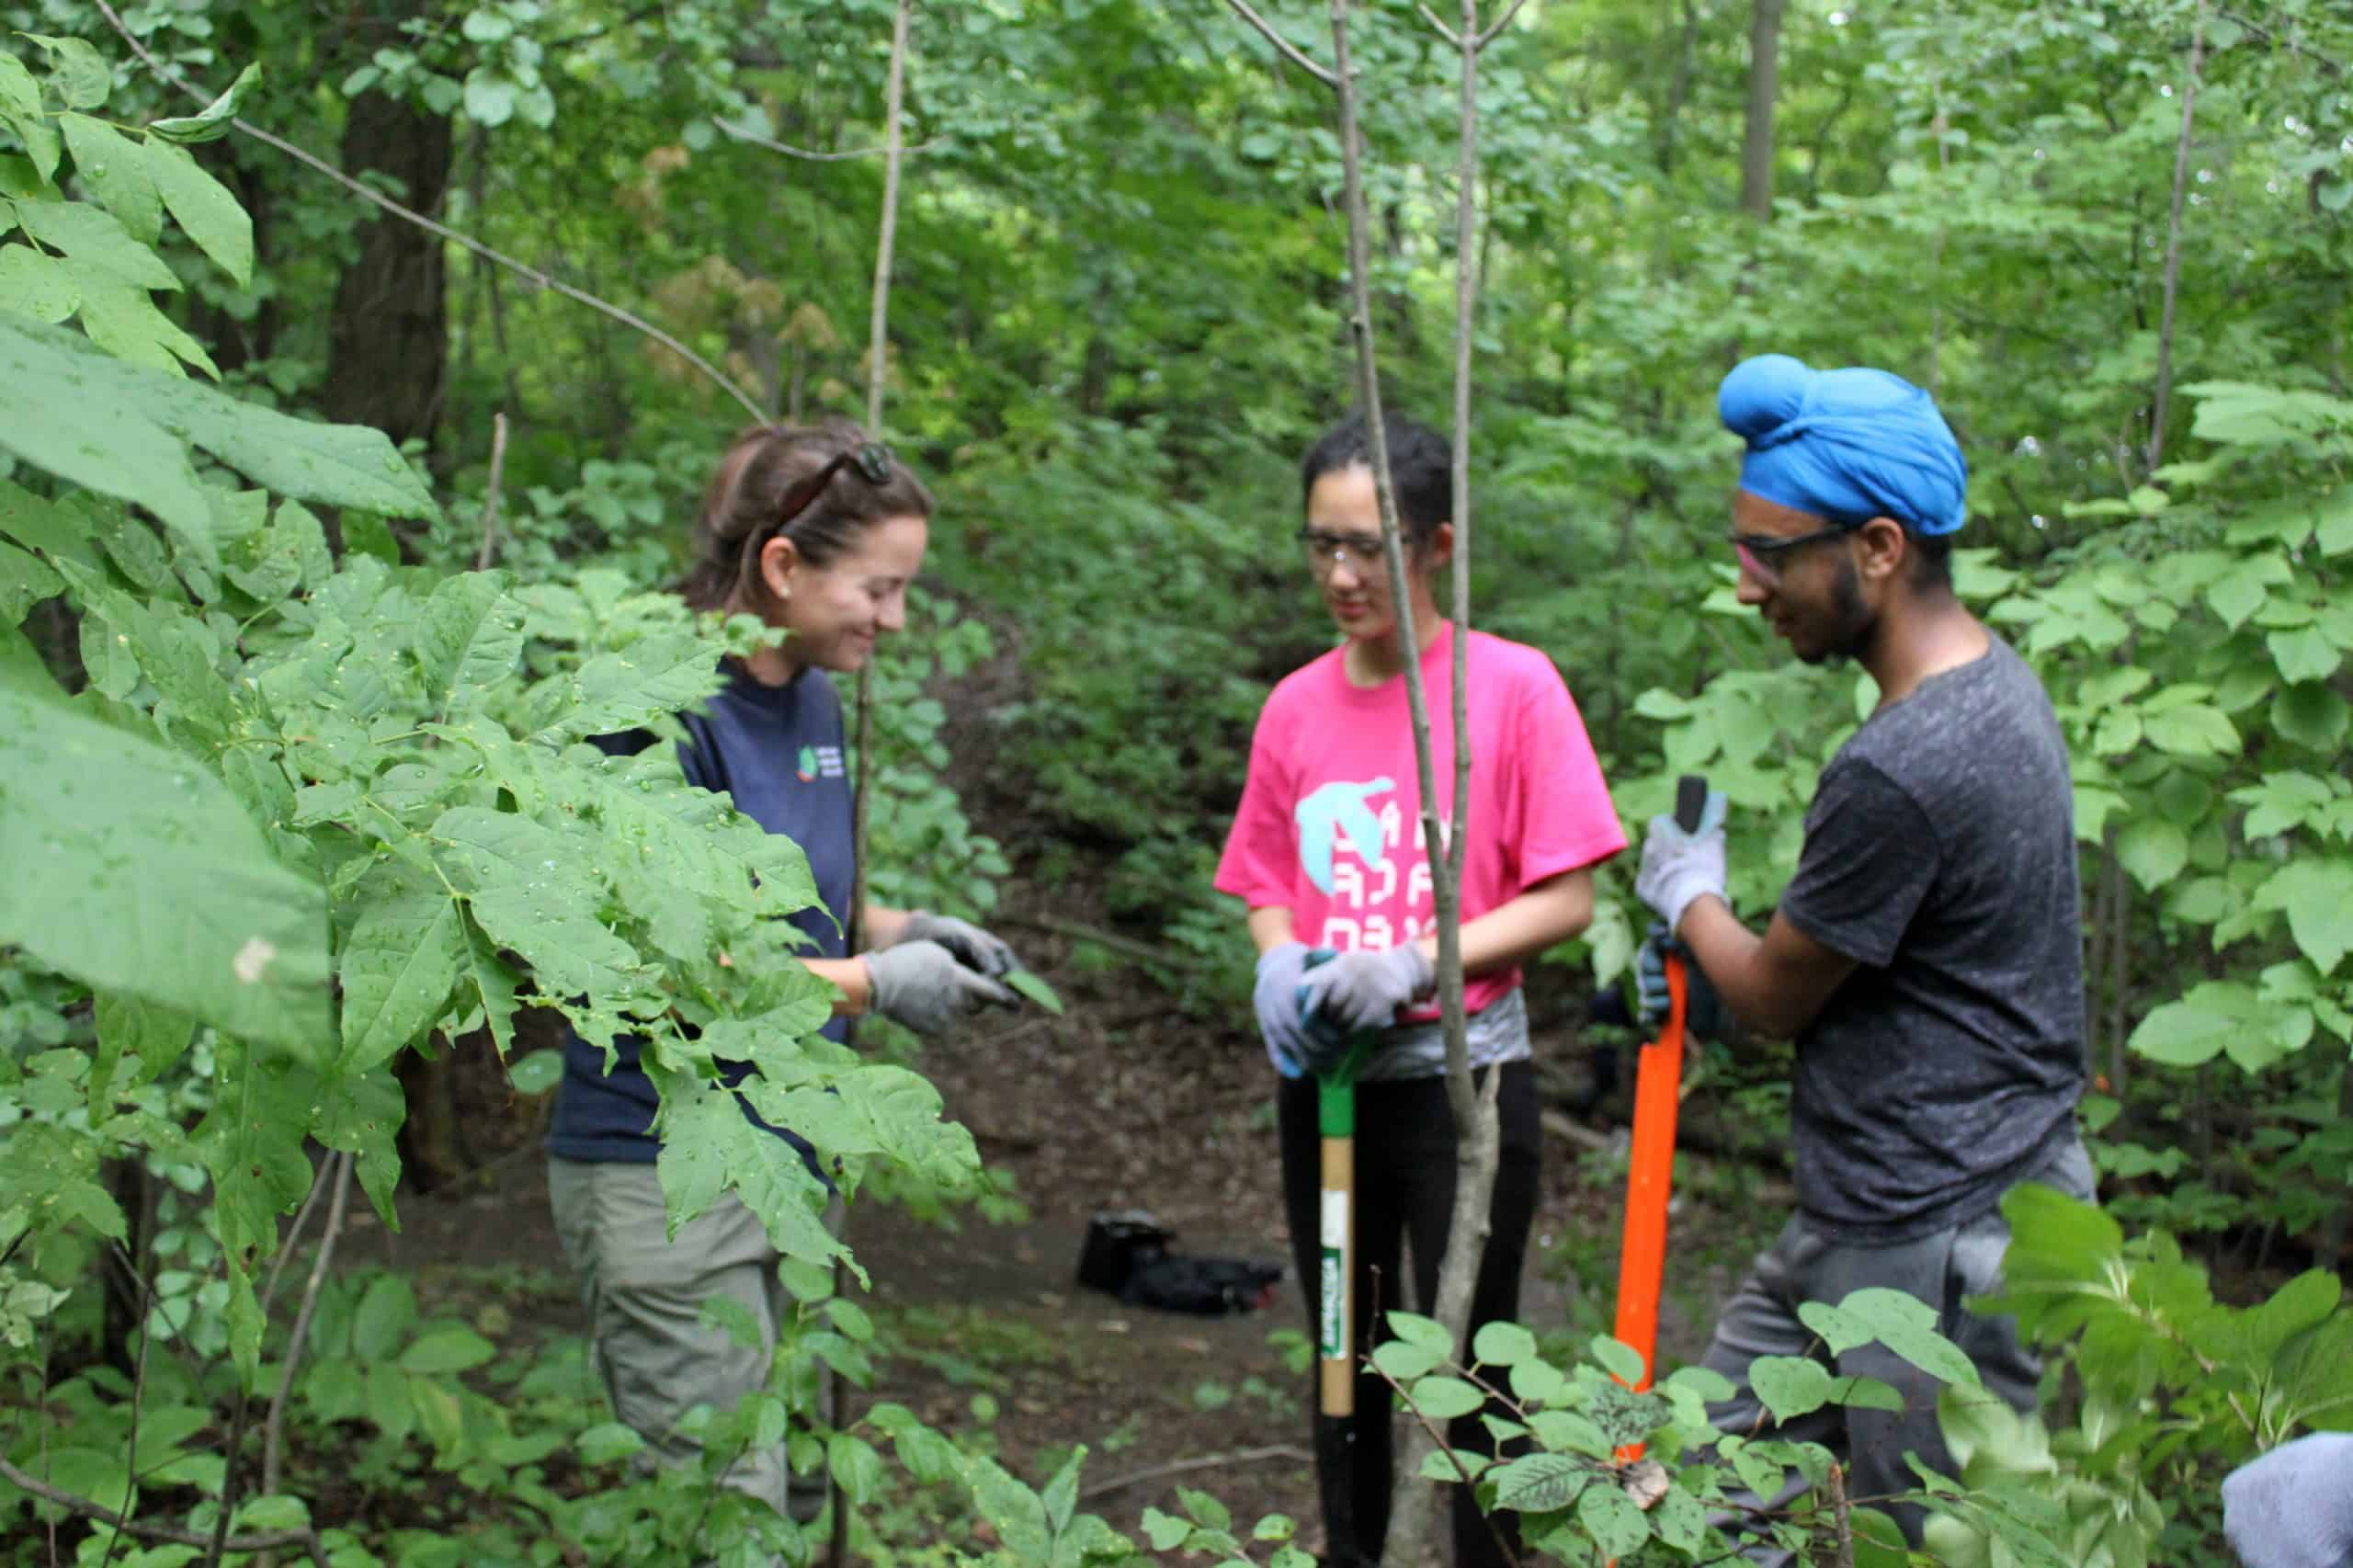 two teens with a CVC staff holding hand tools and working in a wood area as they do trail maintenance